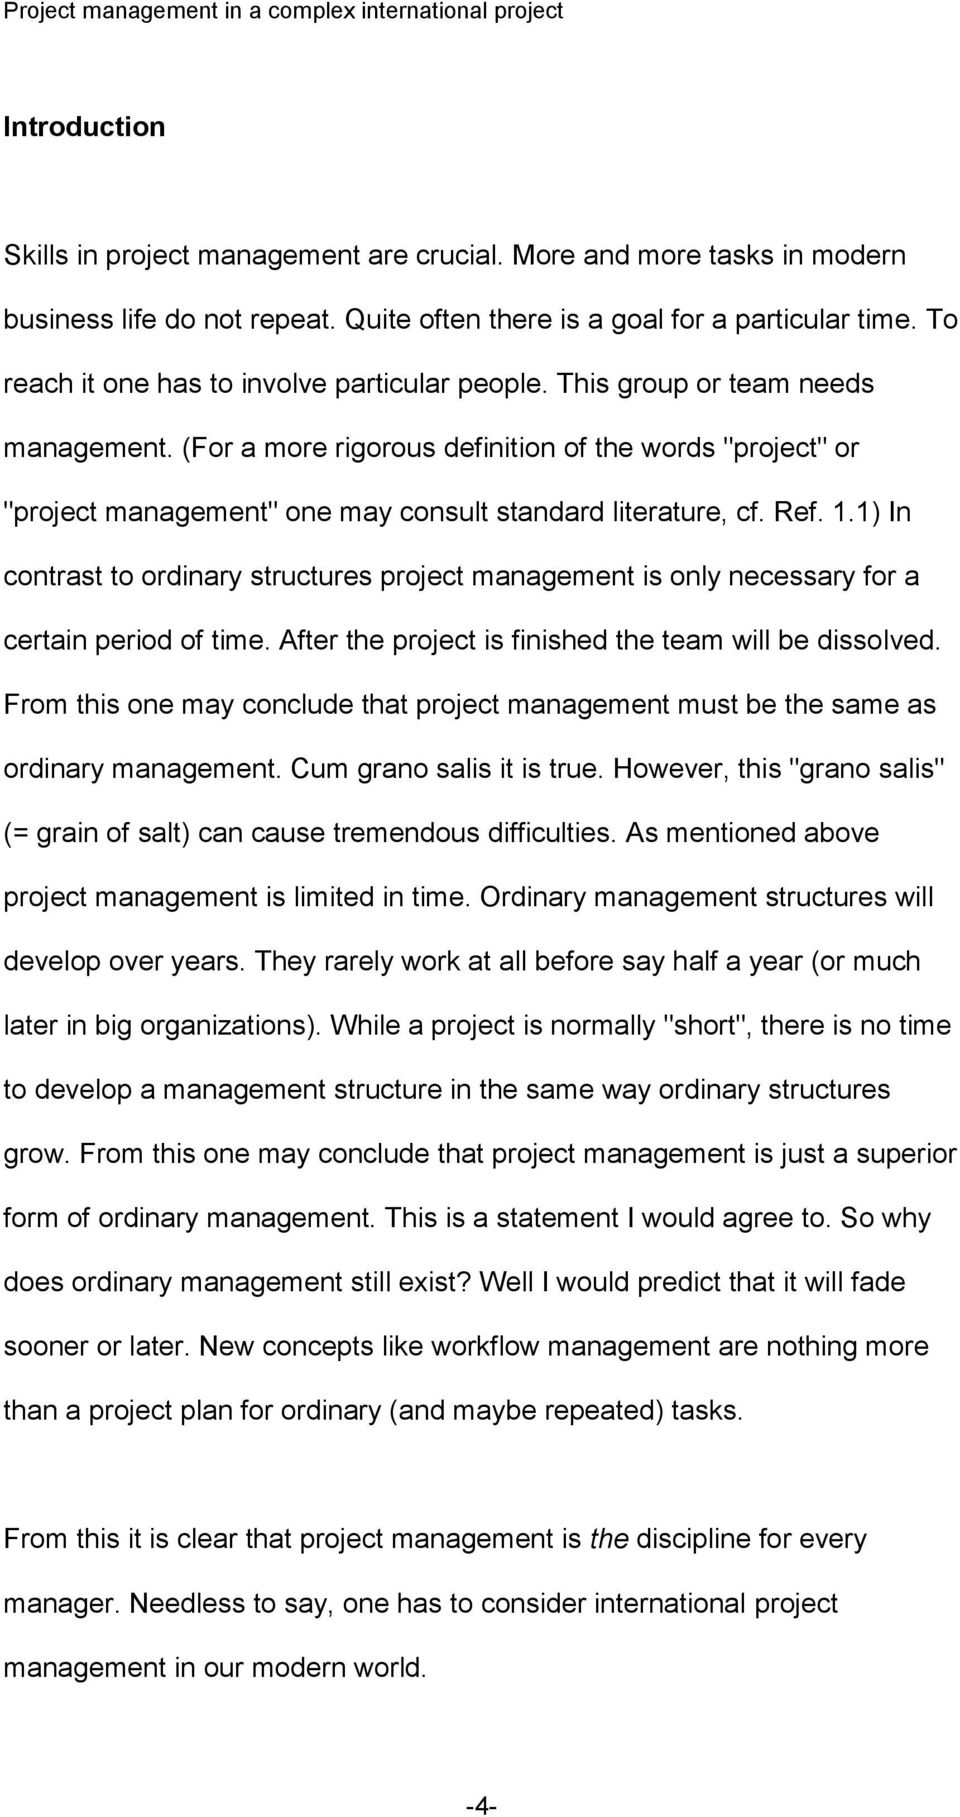 "(For a more rigorous definition of the words ""project"" or ""project management"" one may consult standard literature, cf. Ref. 1."